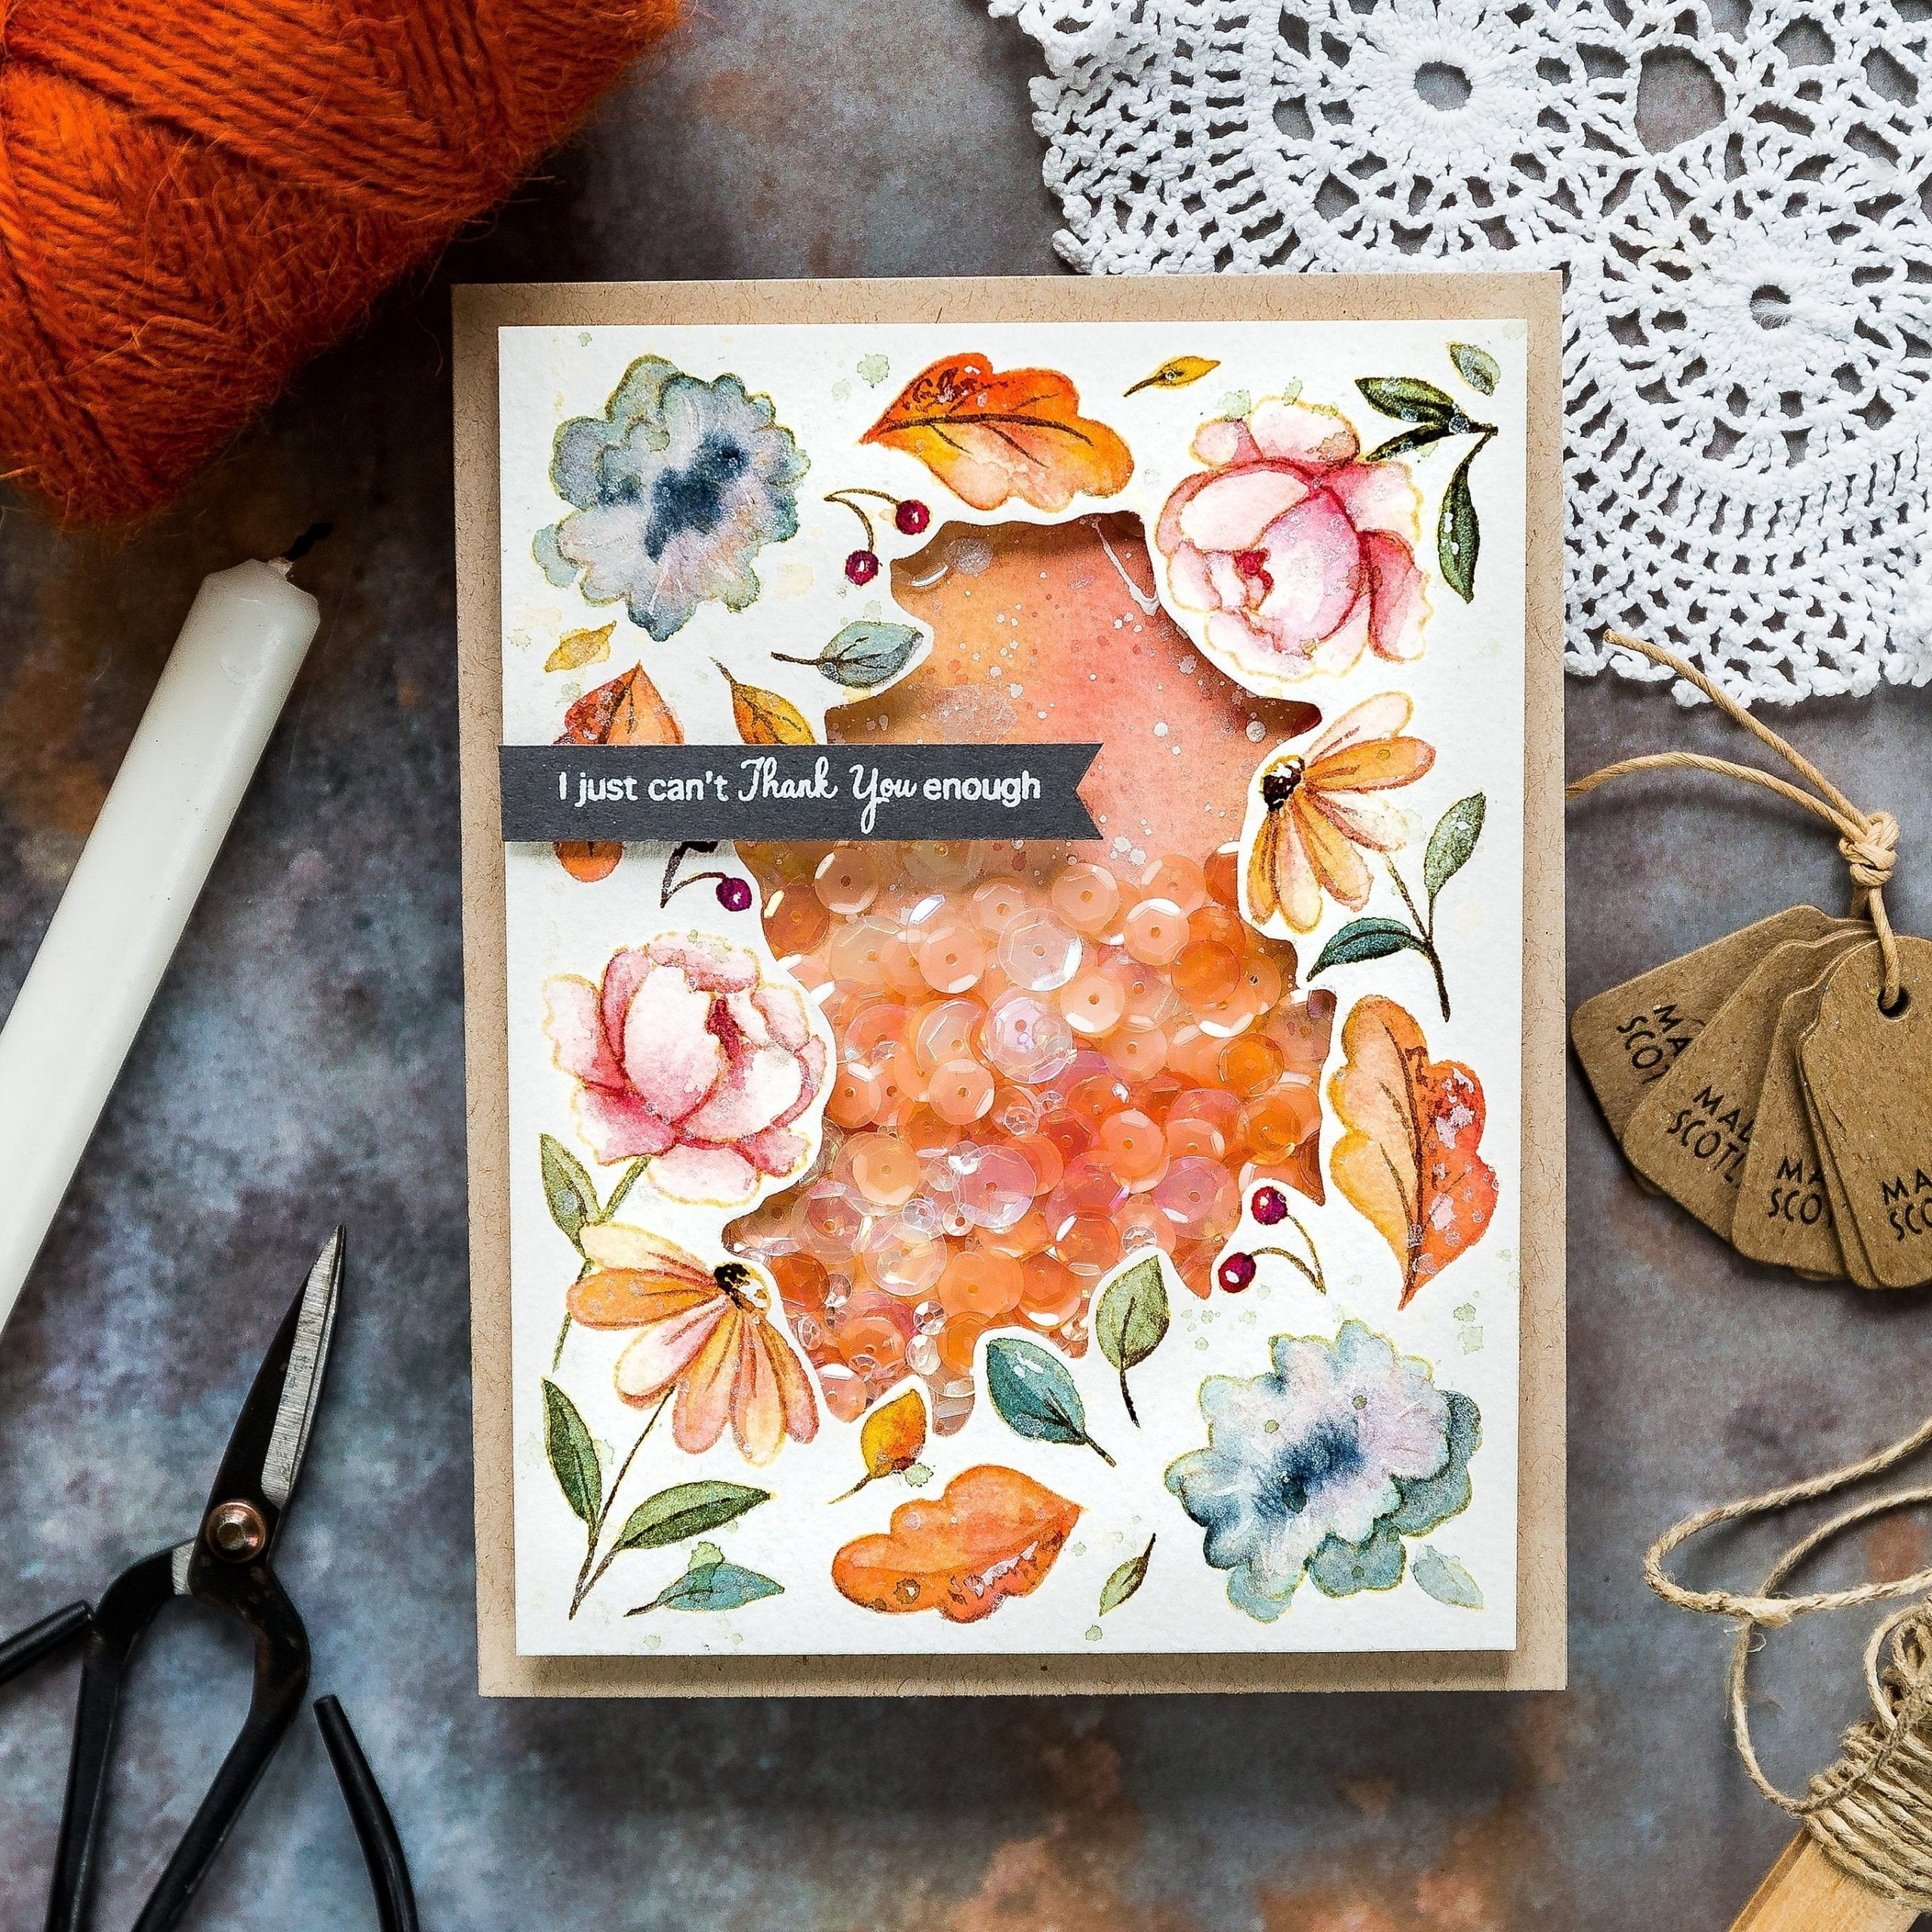 Watercoloured flower frame handmade card by Debby Hughes using the PinkFresh STAMPtember set. Find out more here: https://limedoodledesign.com/2019/09/pinkfresh-stamptember/